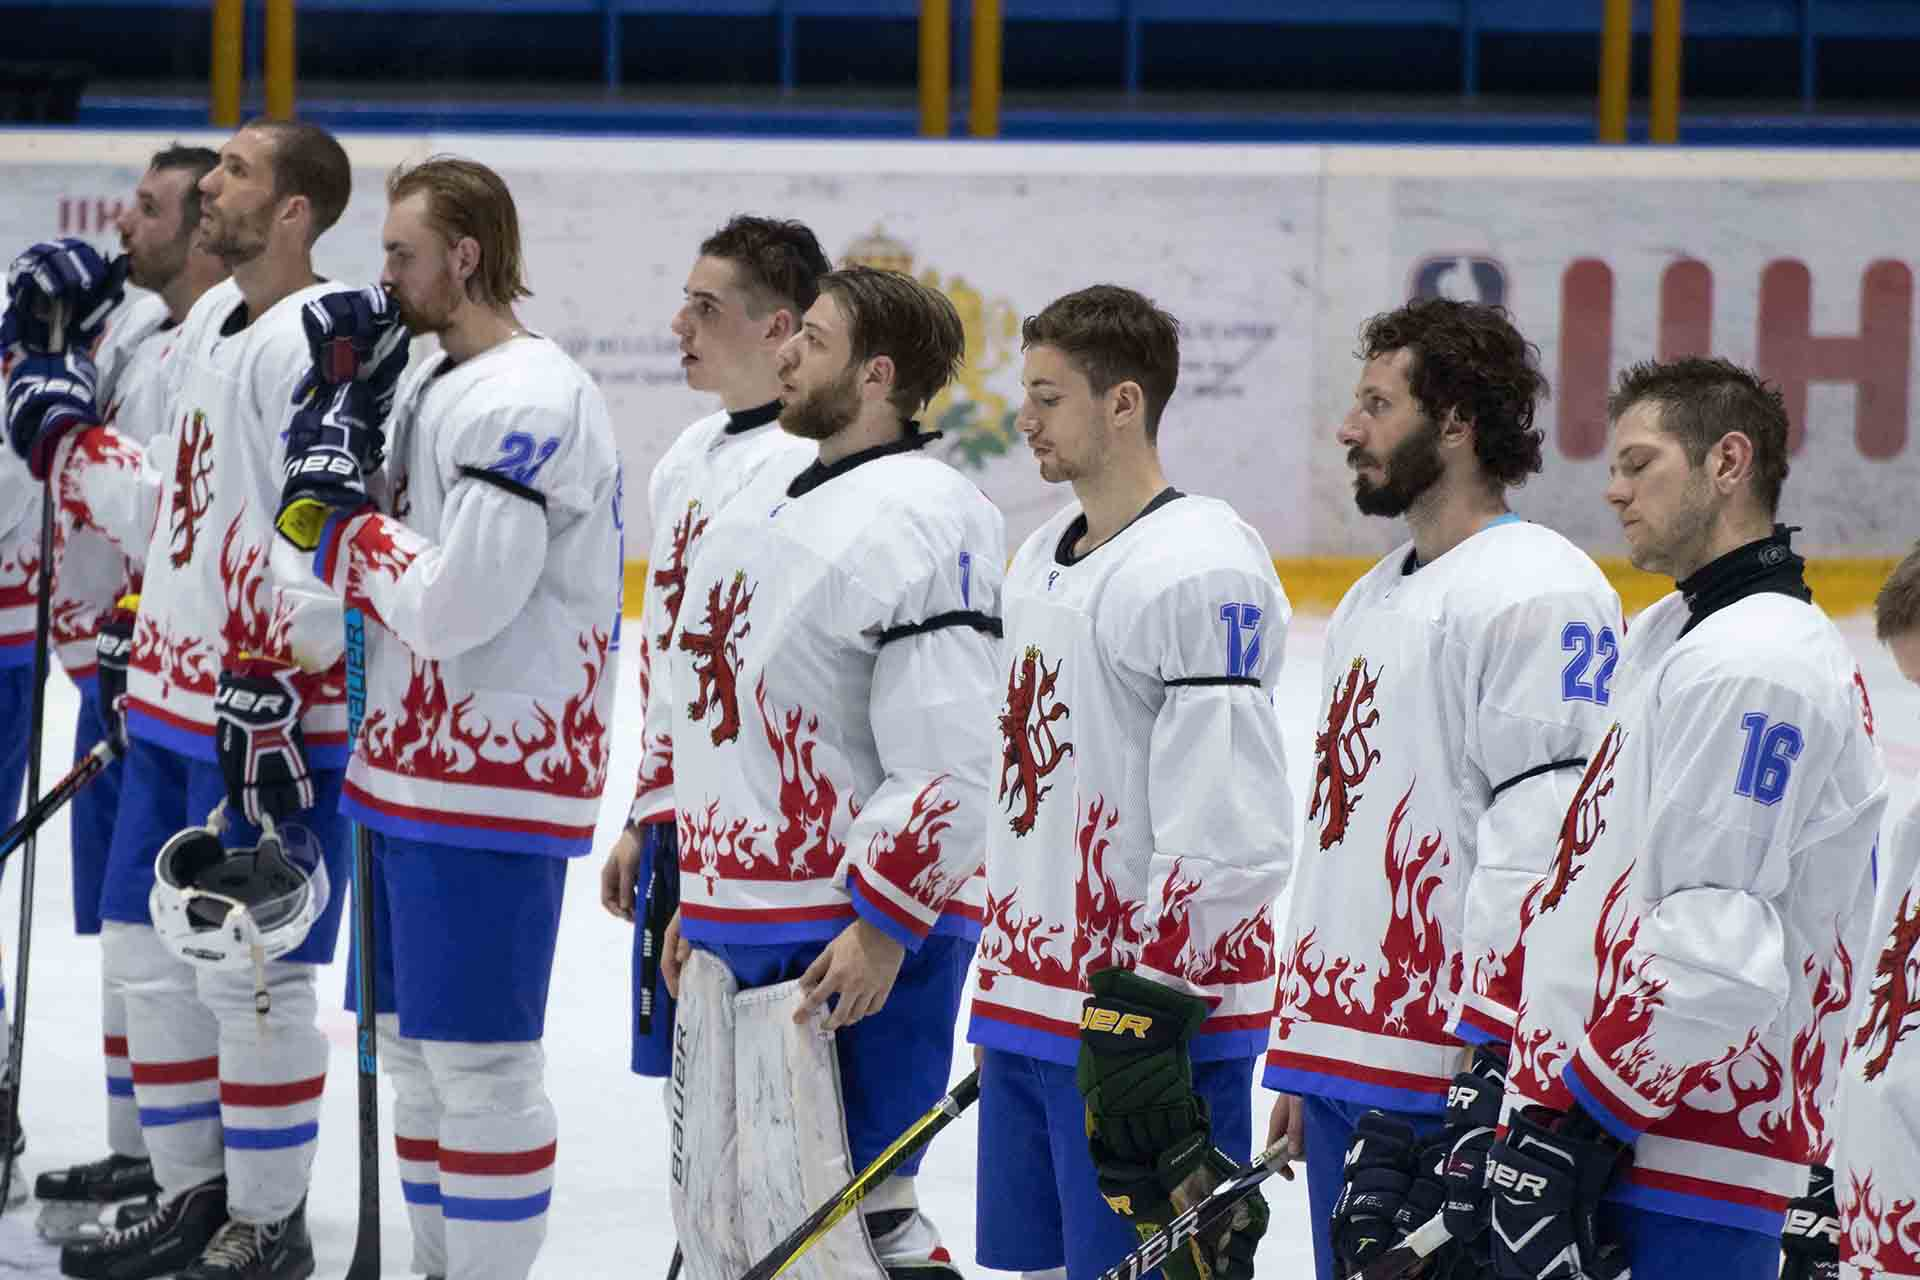 Luxembourg fall to Chinese Taipei in 6-minute blitz